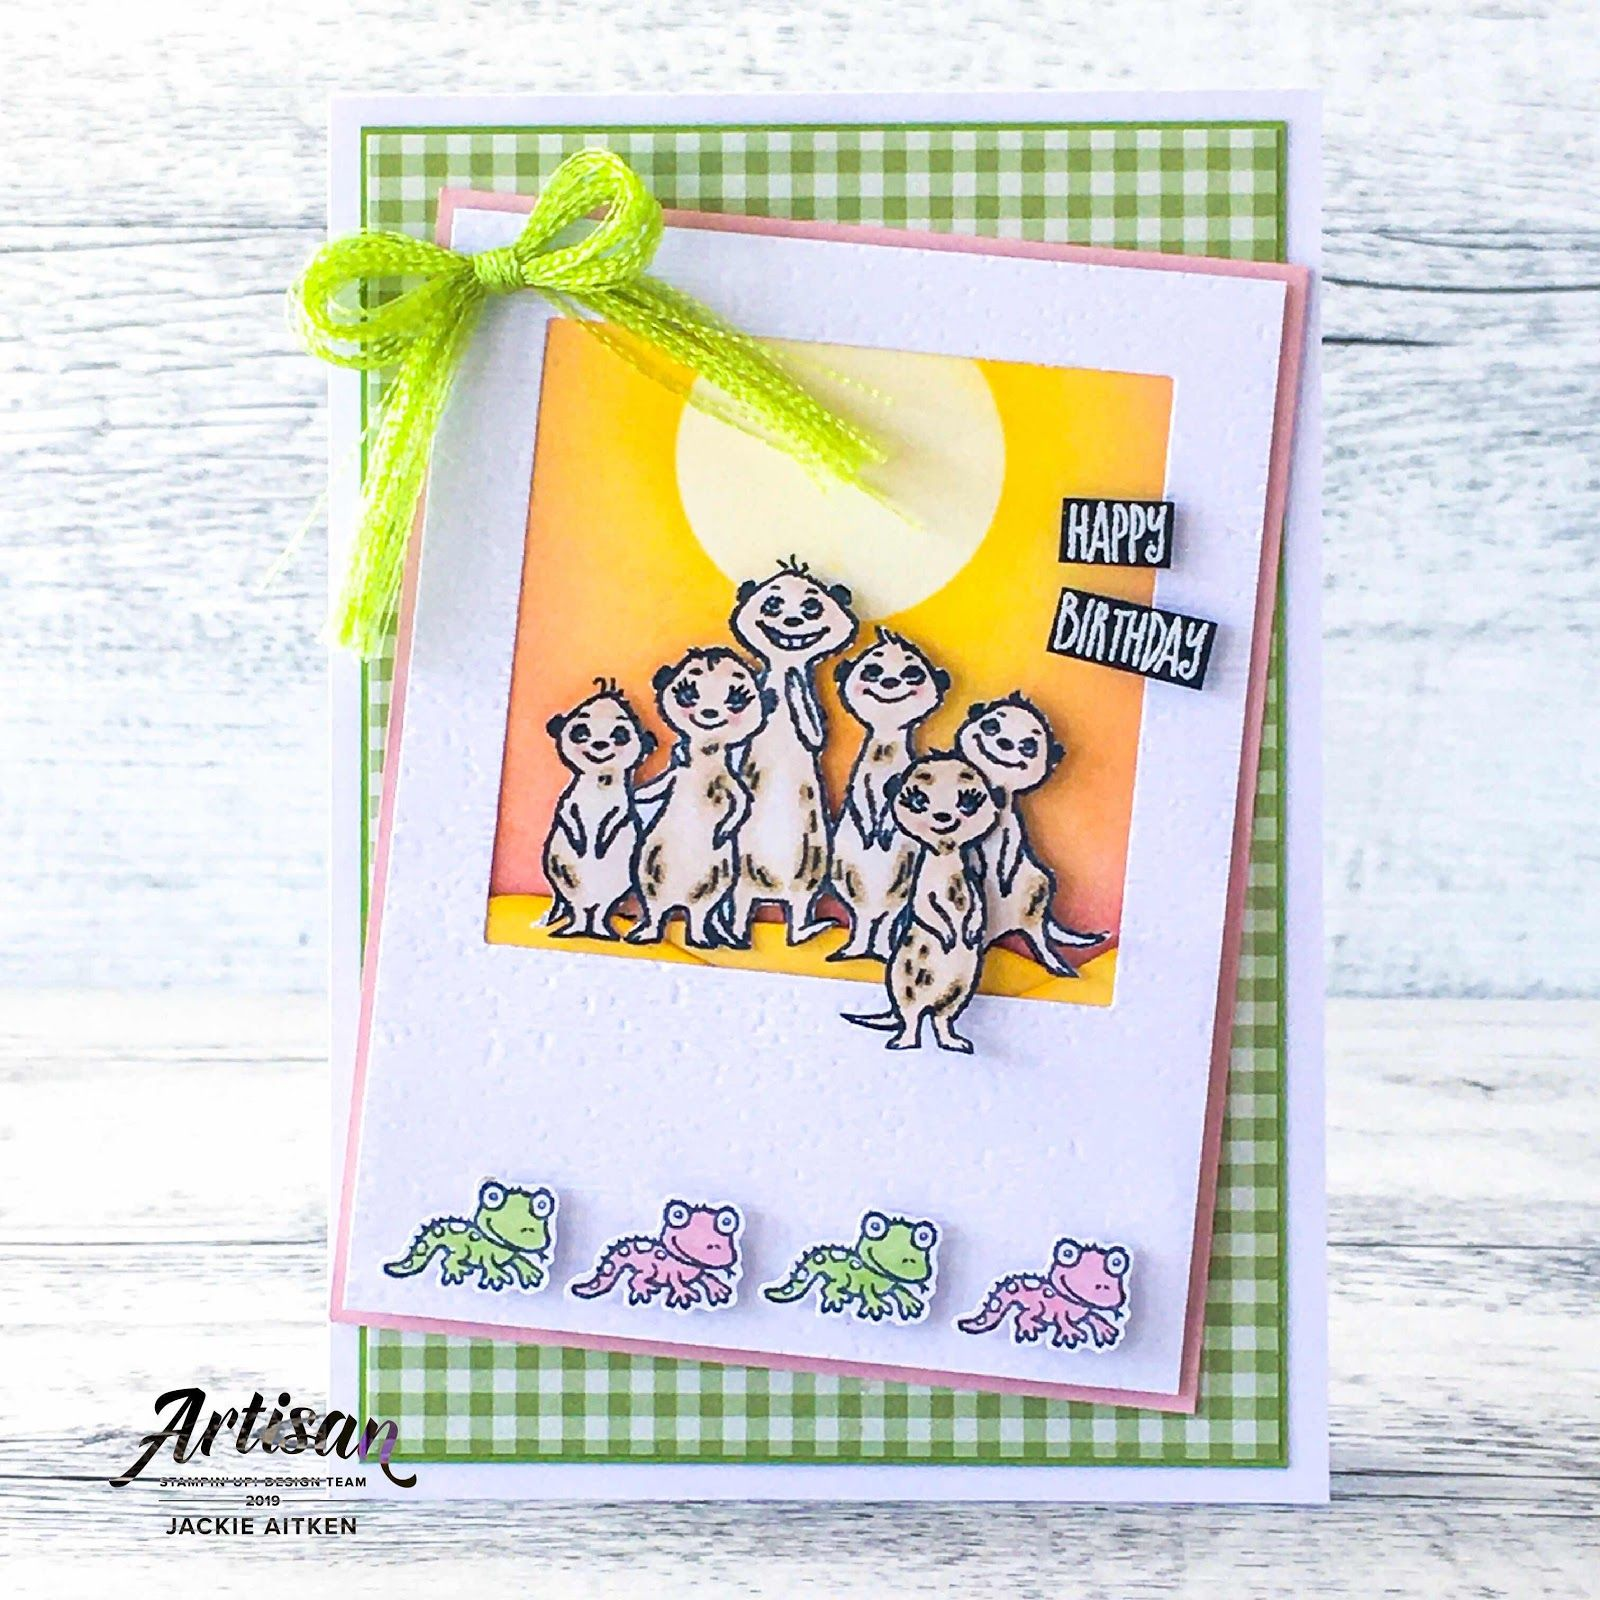 Jaxx Crafty Creations: Stampin' Up Artisan Blog Hop - 2020 Sale a bration Sneak Peak #stampinup!cards